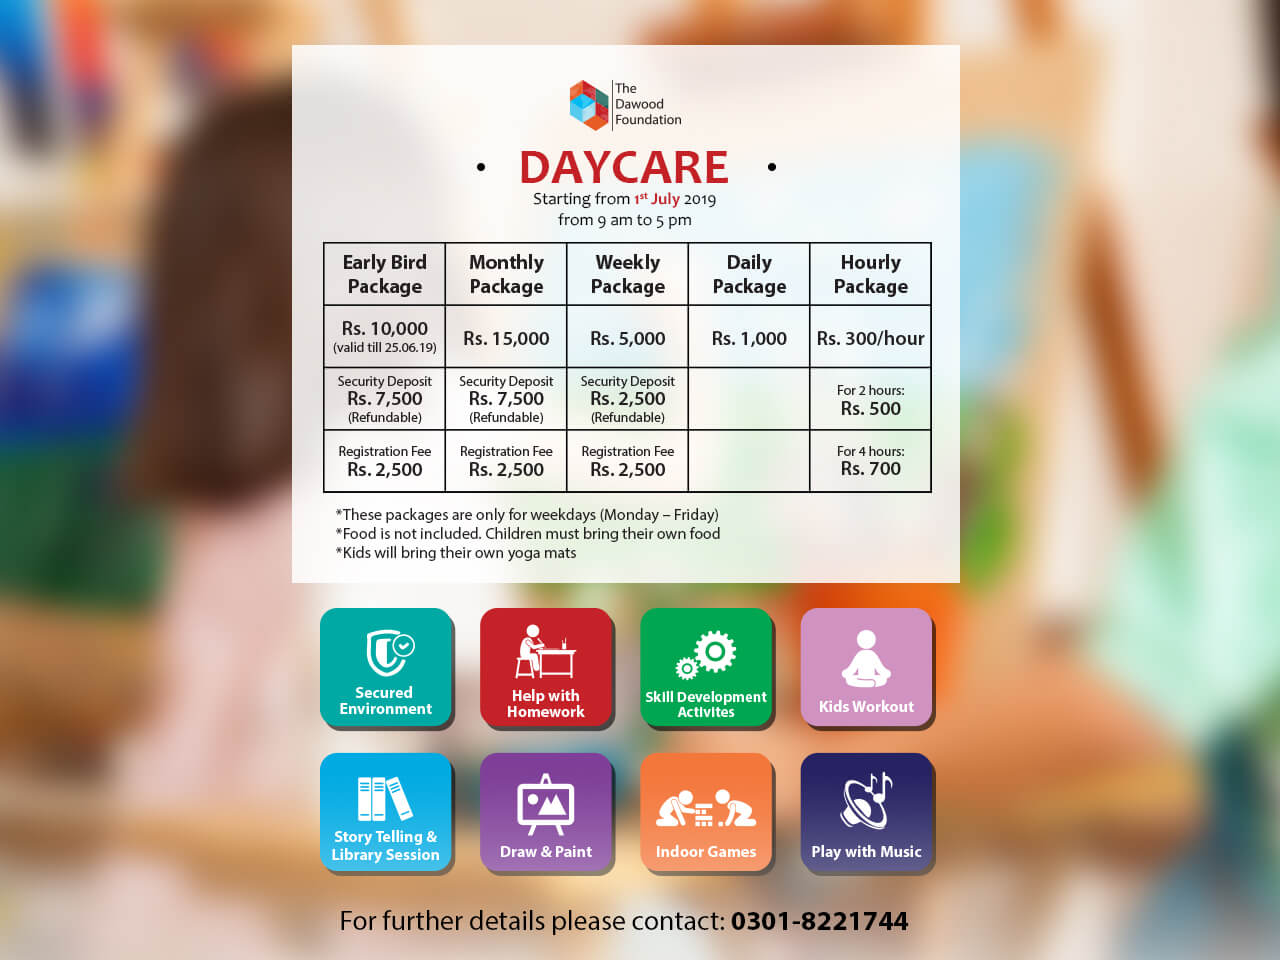 dawood-foundation-daycare